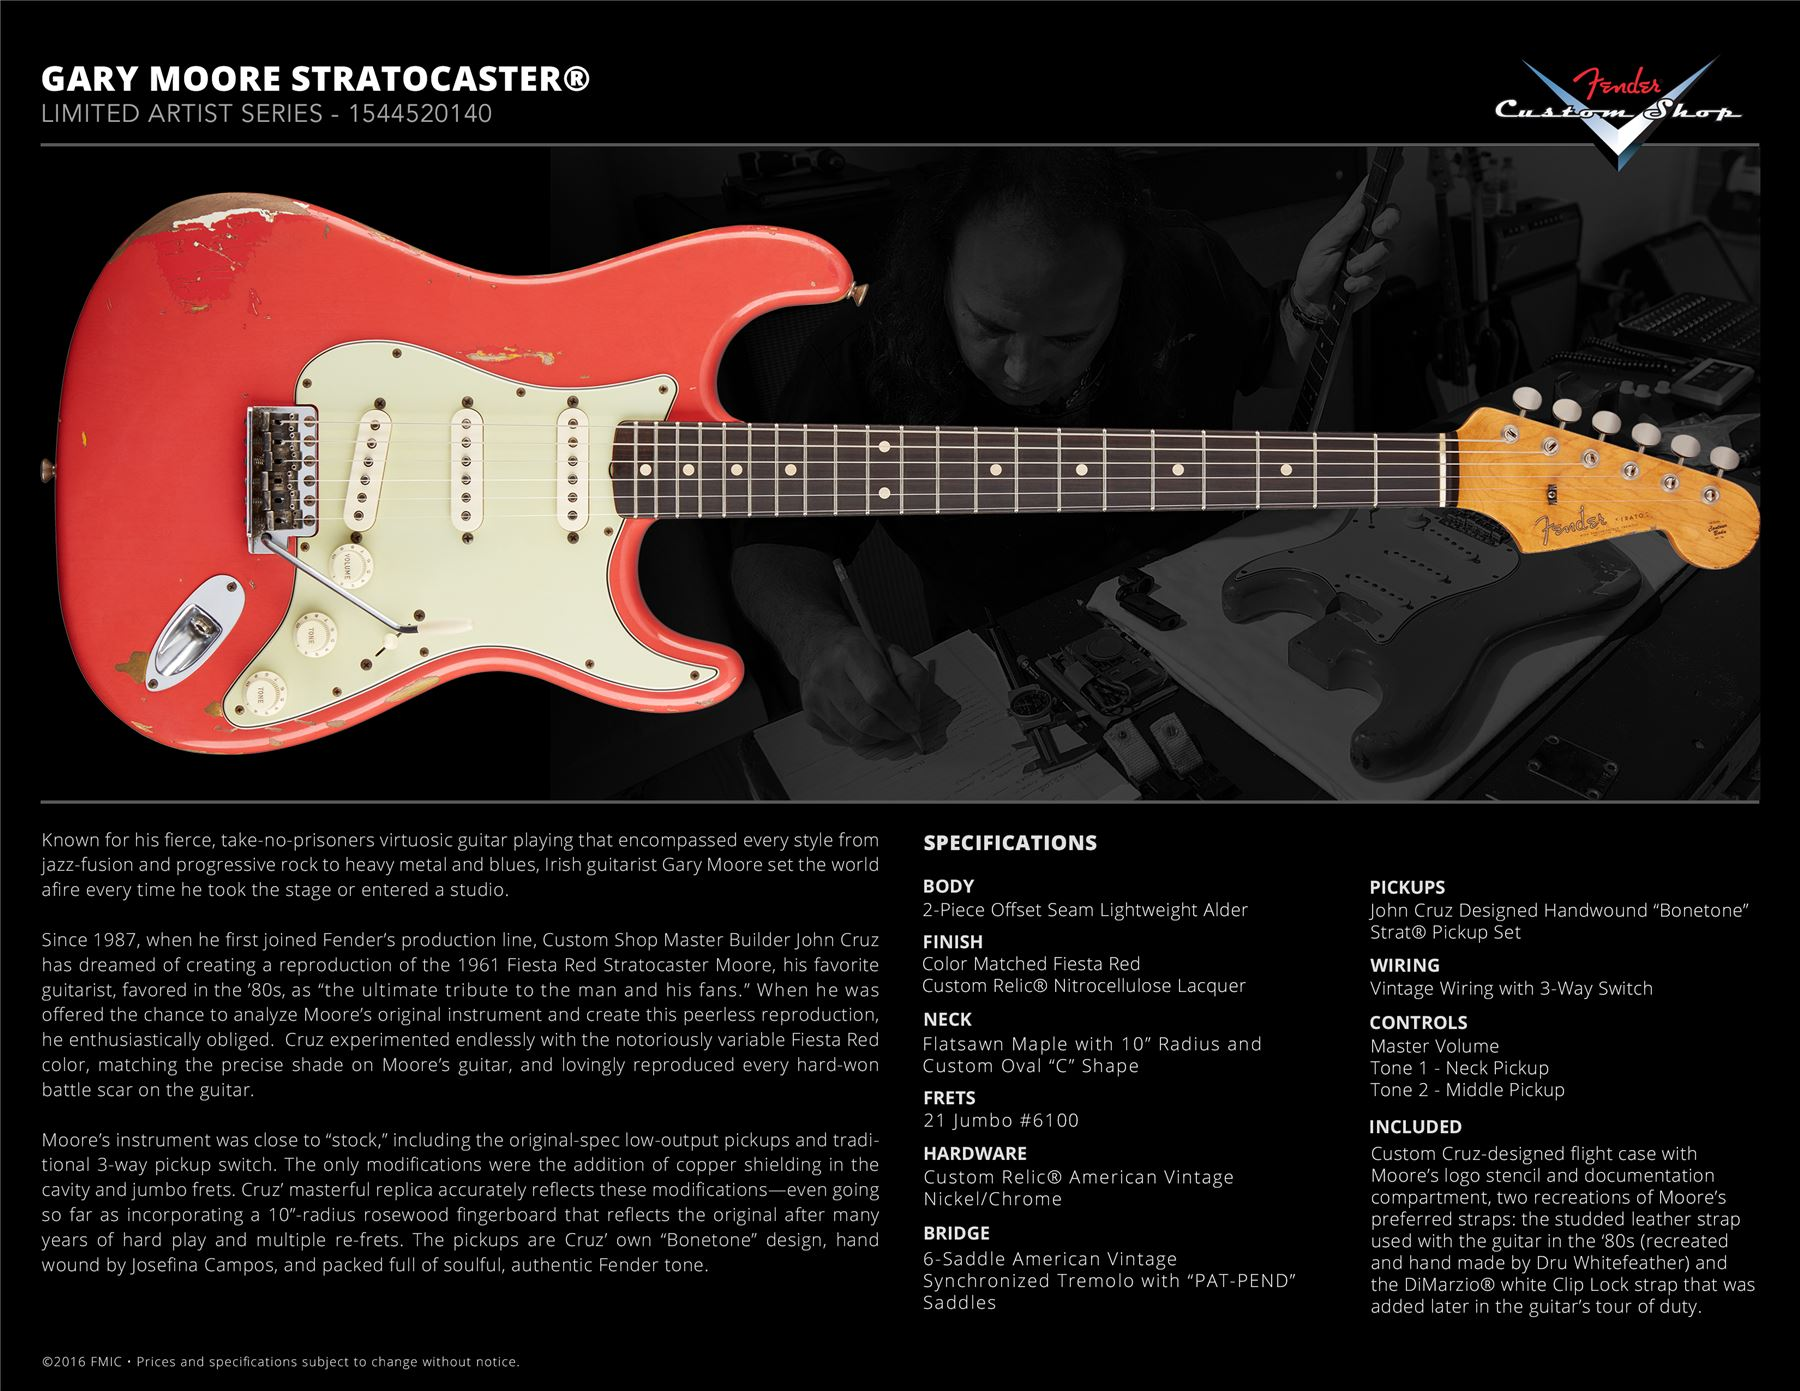 Fender David Pickup Wiring Diagram Guide And Troubleshooting Of American Custom Stratocaster Tone Schematics Technical Information Comparison With The Squier Strat